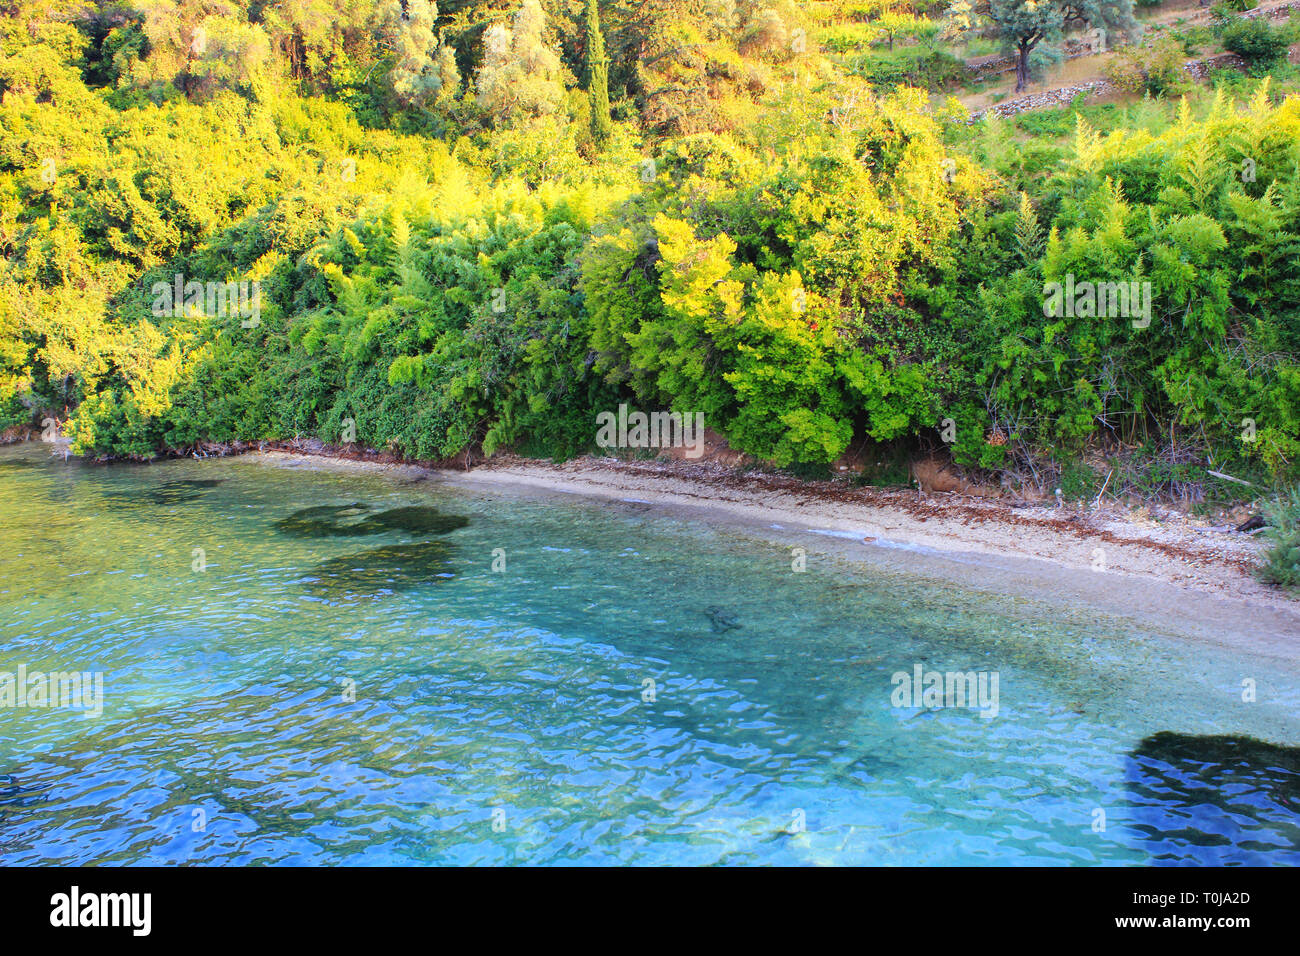 Beautiful island of Scorpios (Ionian sea), owned by Onassis family. - Stock Image